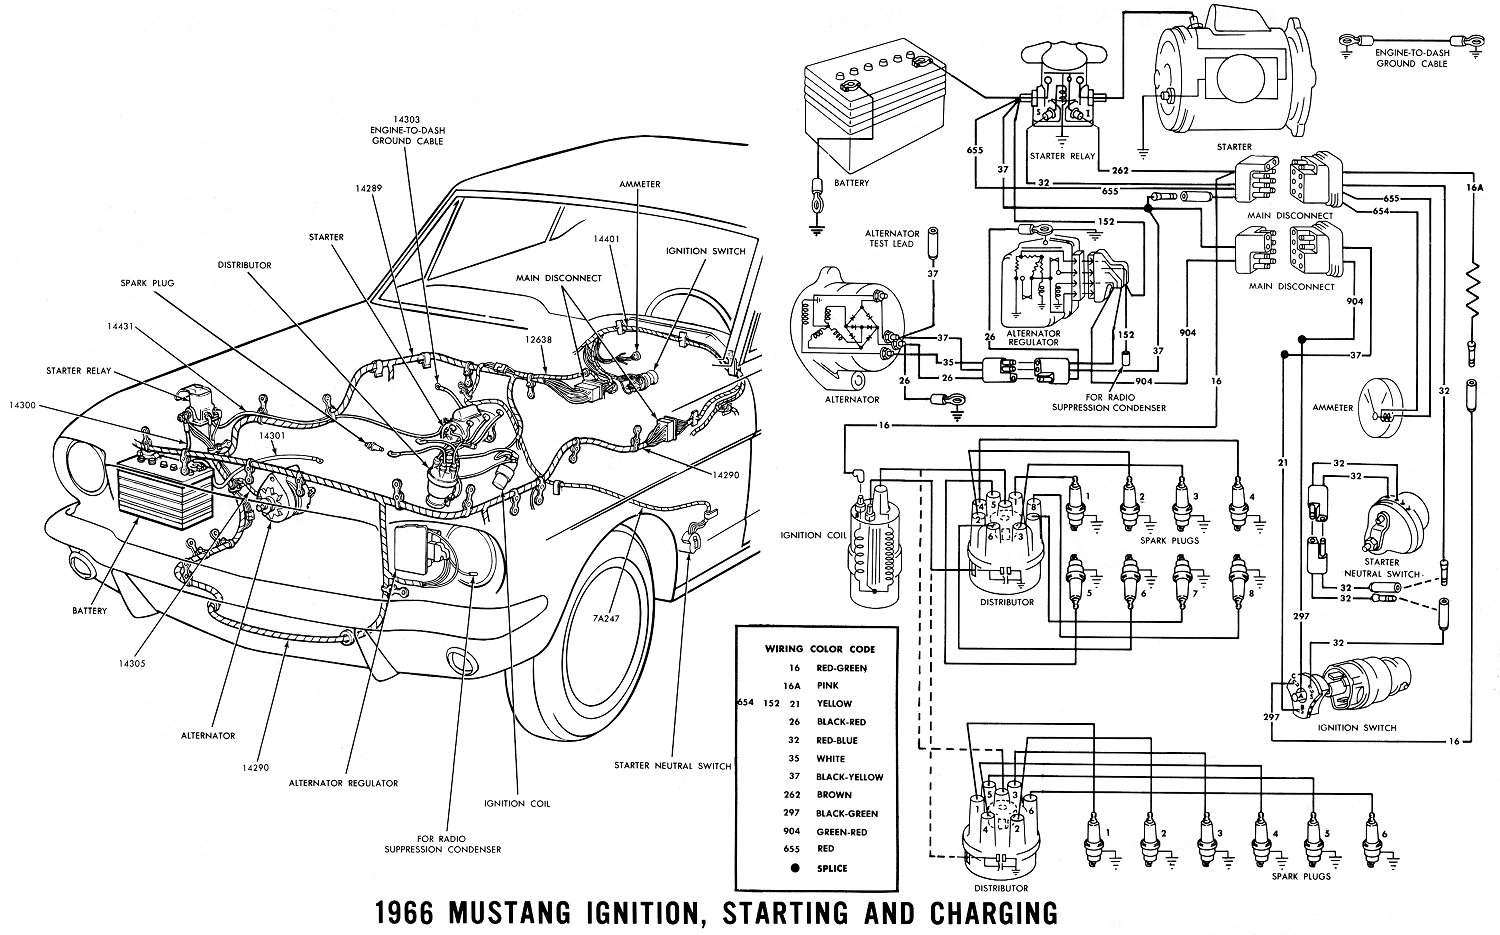 66ignit 1966 mustang wiring diagrams average joe restoration 1969 Ford Mustang Wiring Diagram at bayanpartner.co